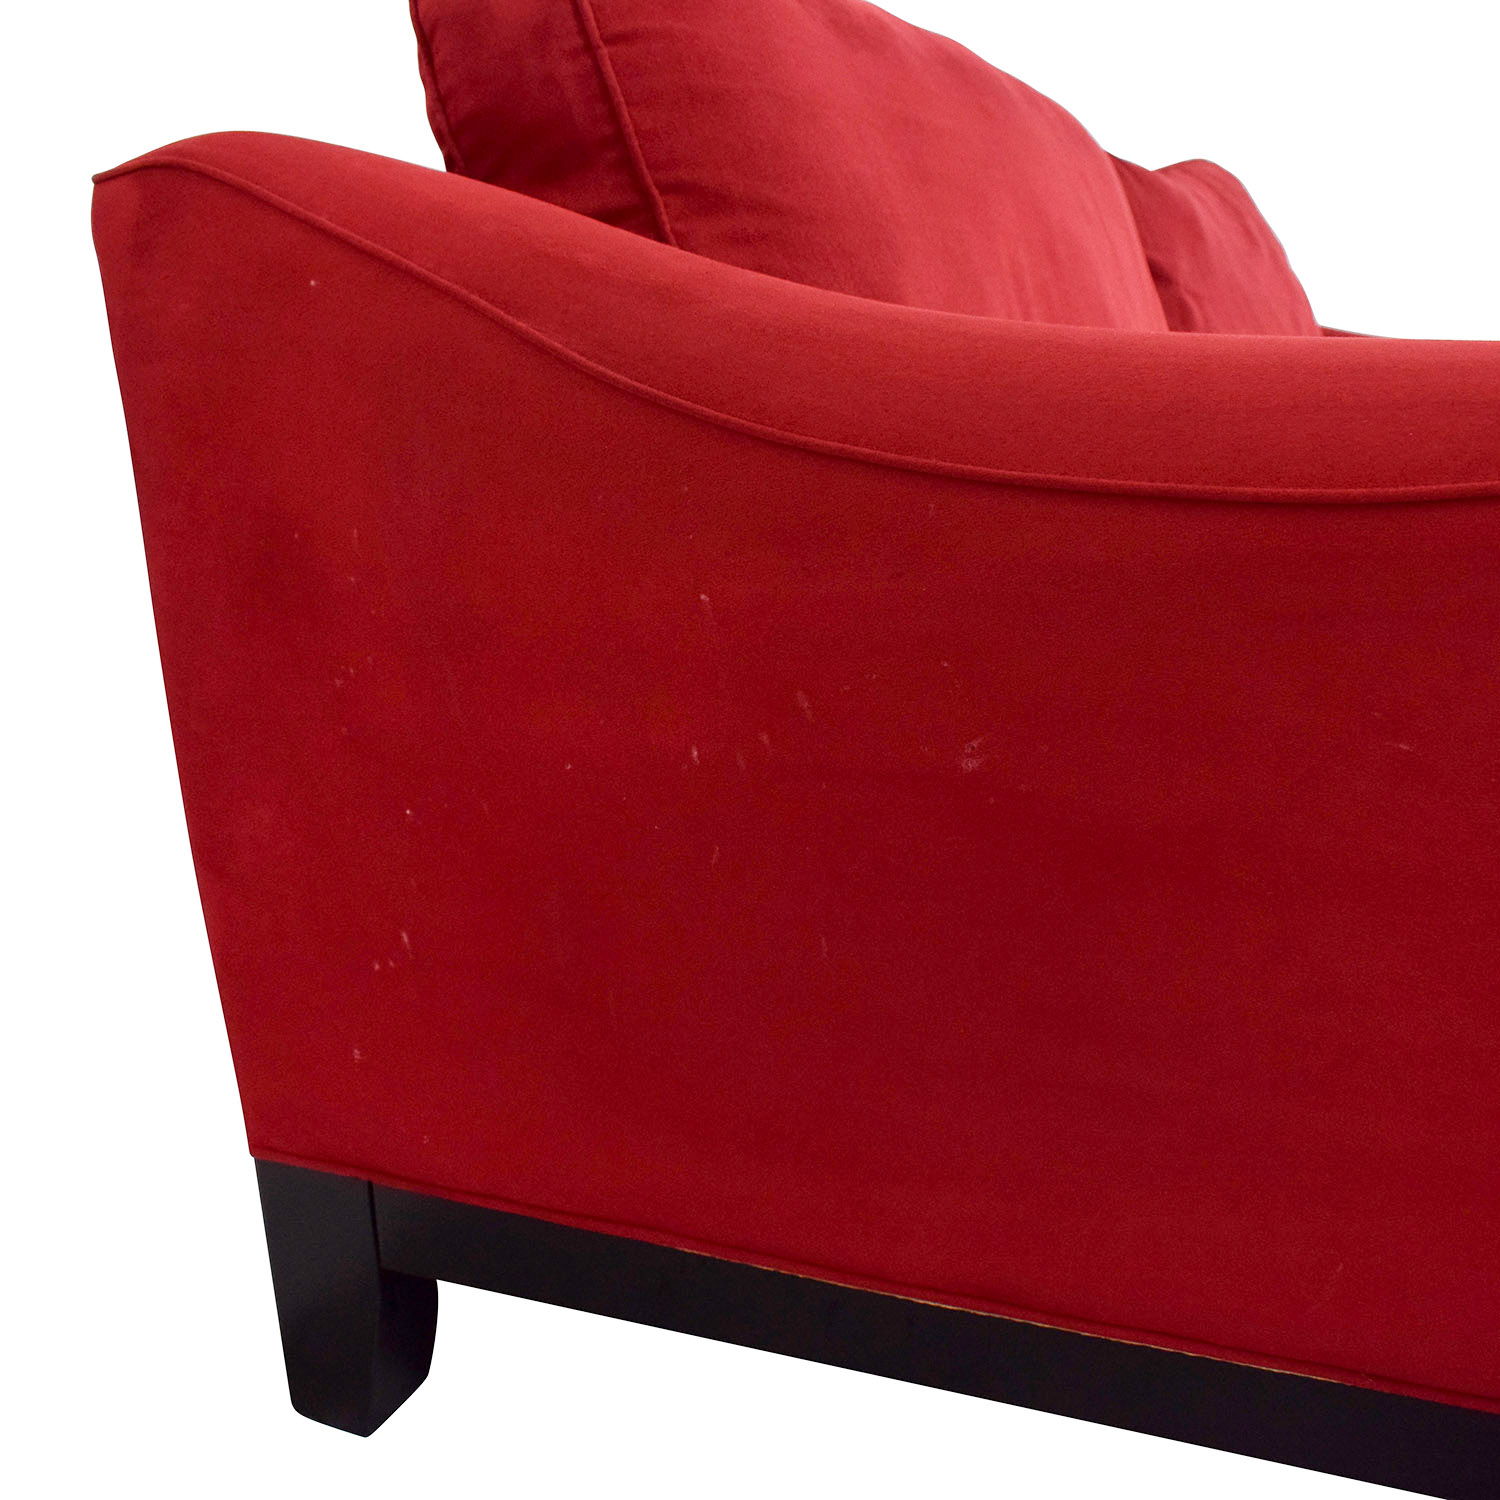 Raymour & Flanigan Raymour & Flanigan Red Sleeper Sofa second hand